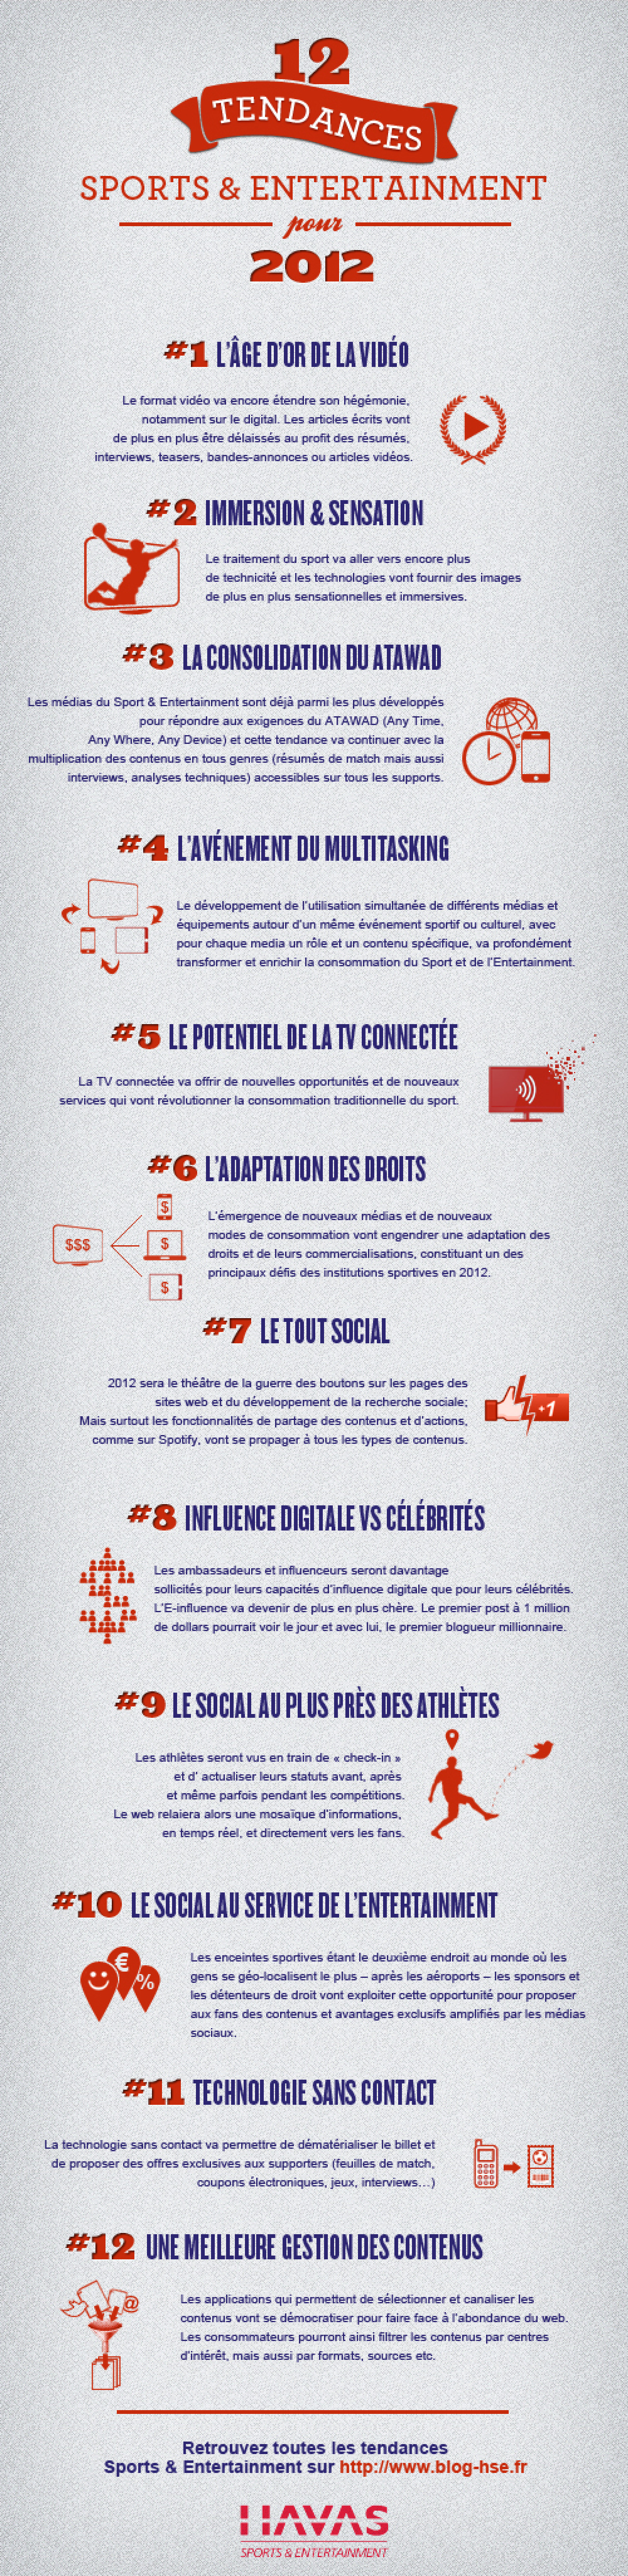 Best Cases 2011 et Tendances 2012 Infographic